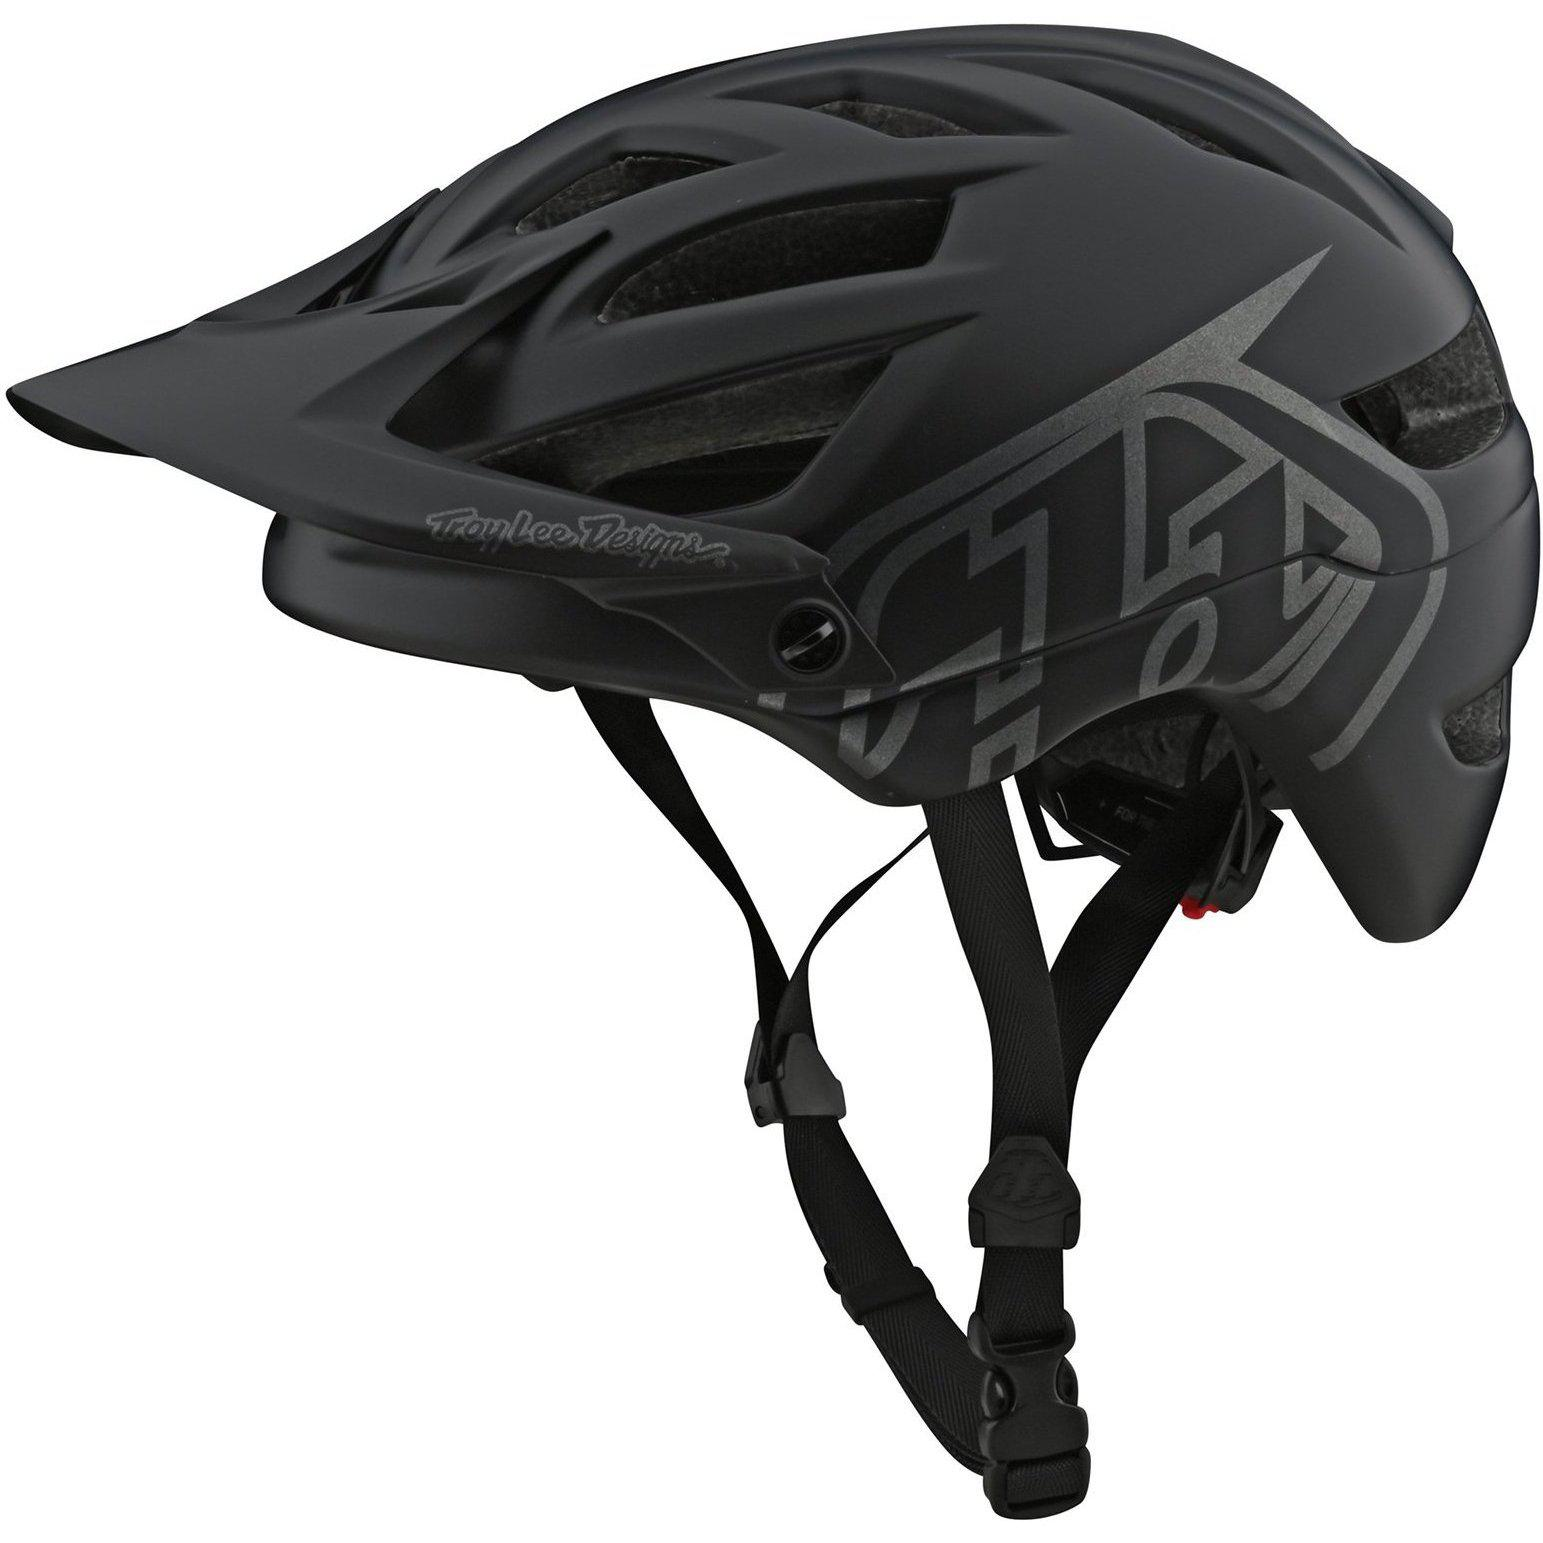 Troy Lee Designs-Troy Lee Designs A1 Drone Helmet-Drone - Black/Silver-M/L-TLD131097153-saddleback-elite-performance-cycling